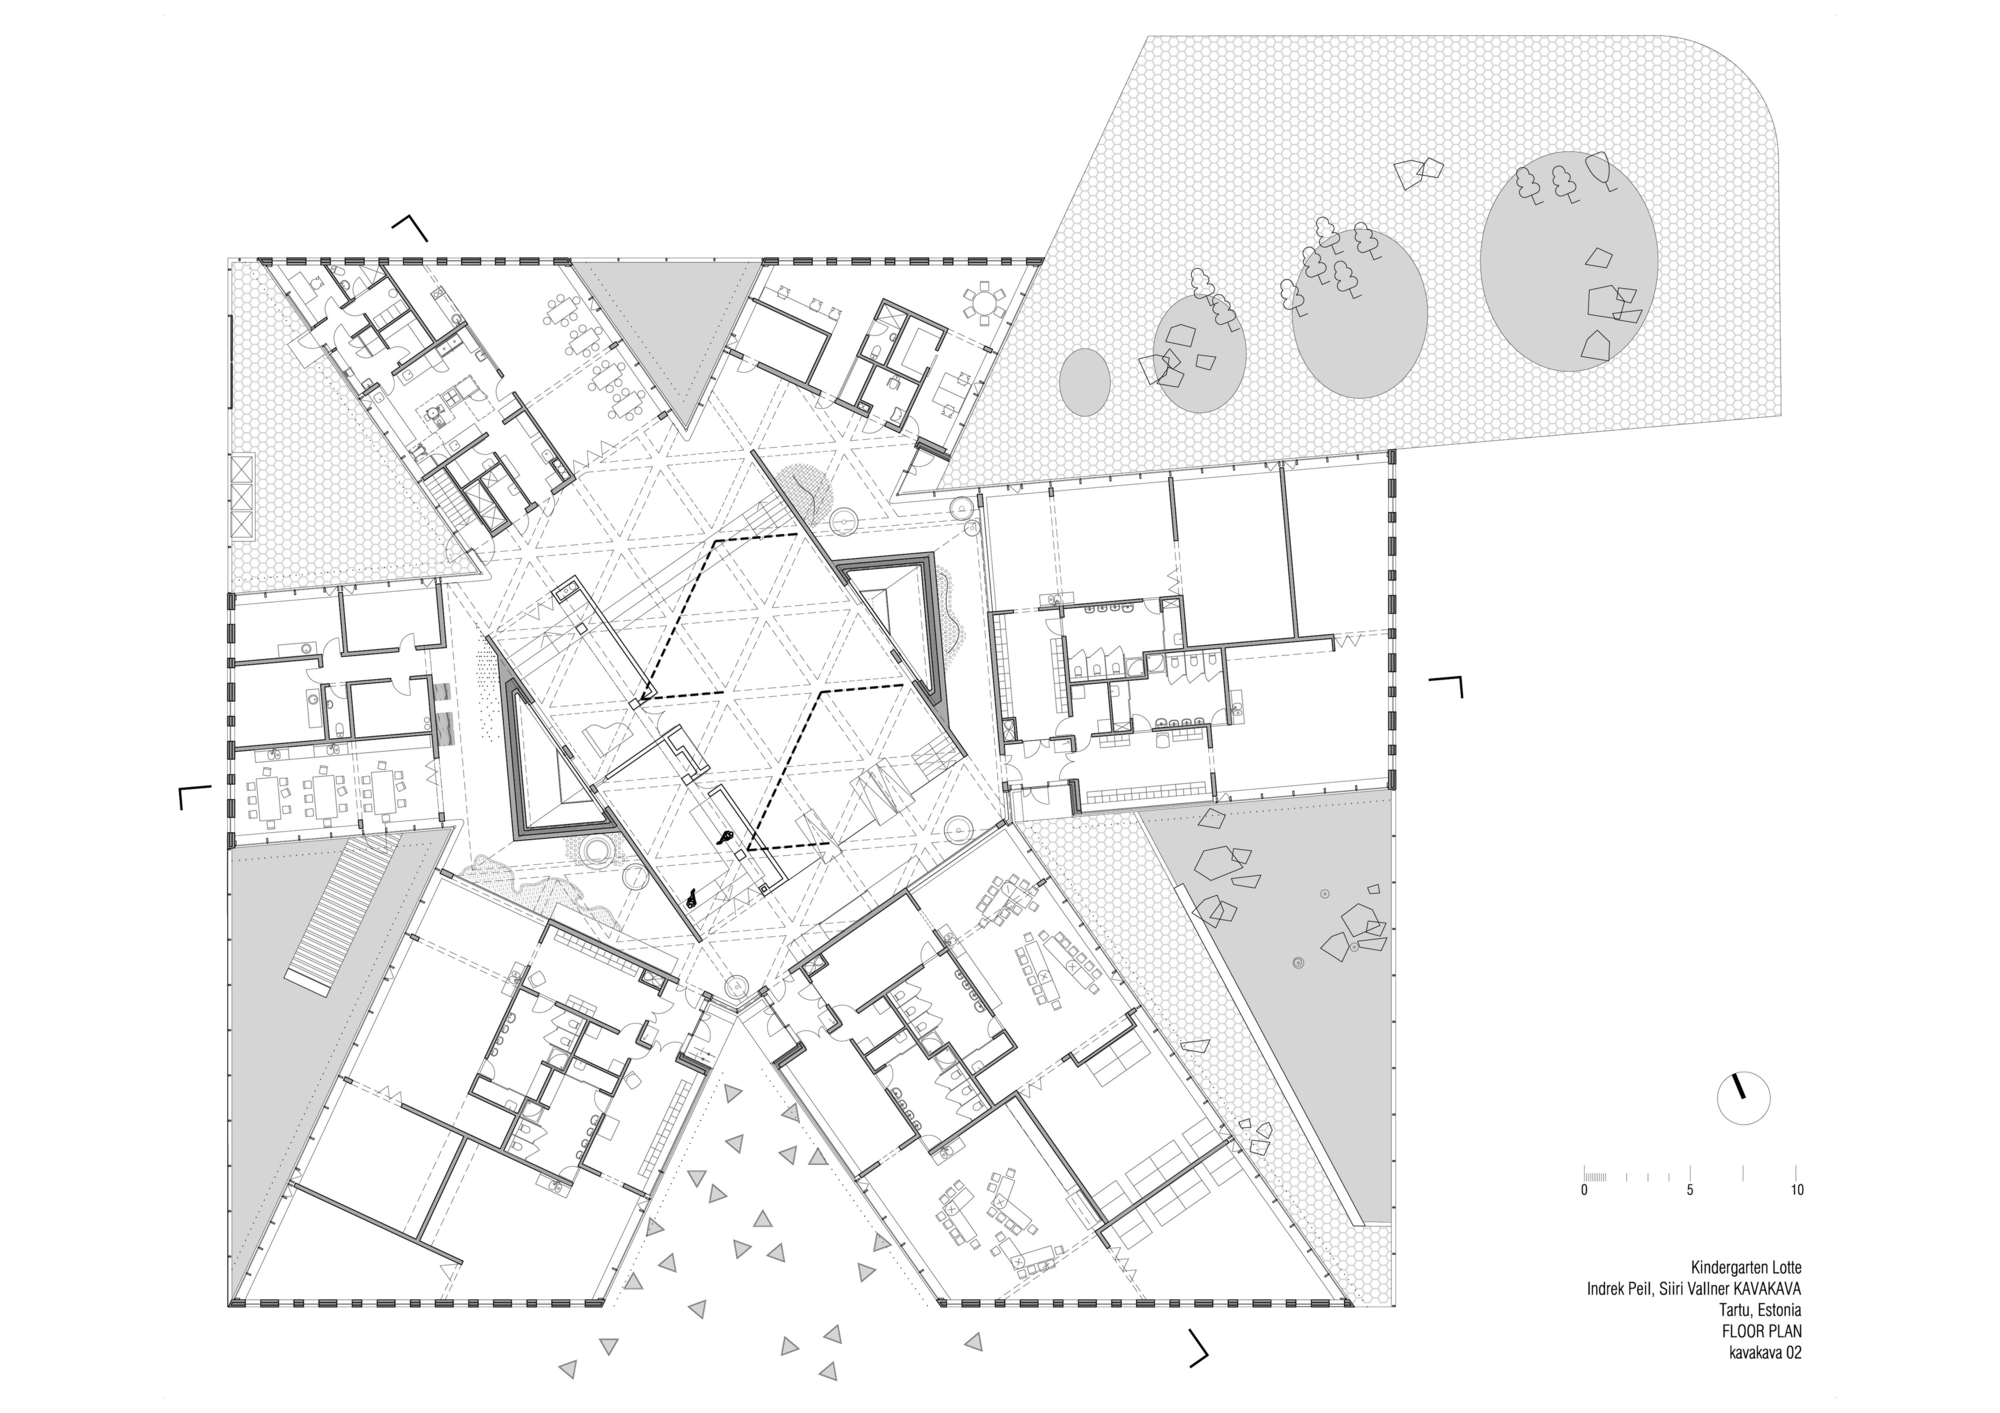 514fb202b3fc4b8528000075 Kindergarten Lotte Kavakava Architects Drawing Plan Png 2000 1413 How To Plan Architect Drawing Kindergarten